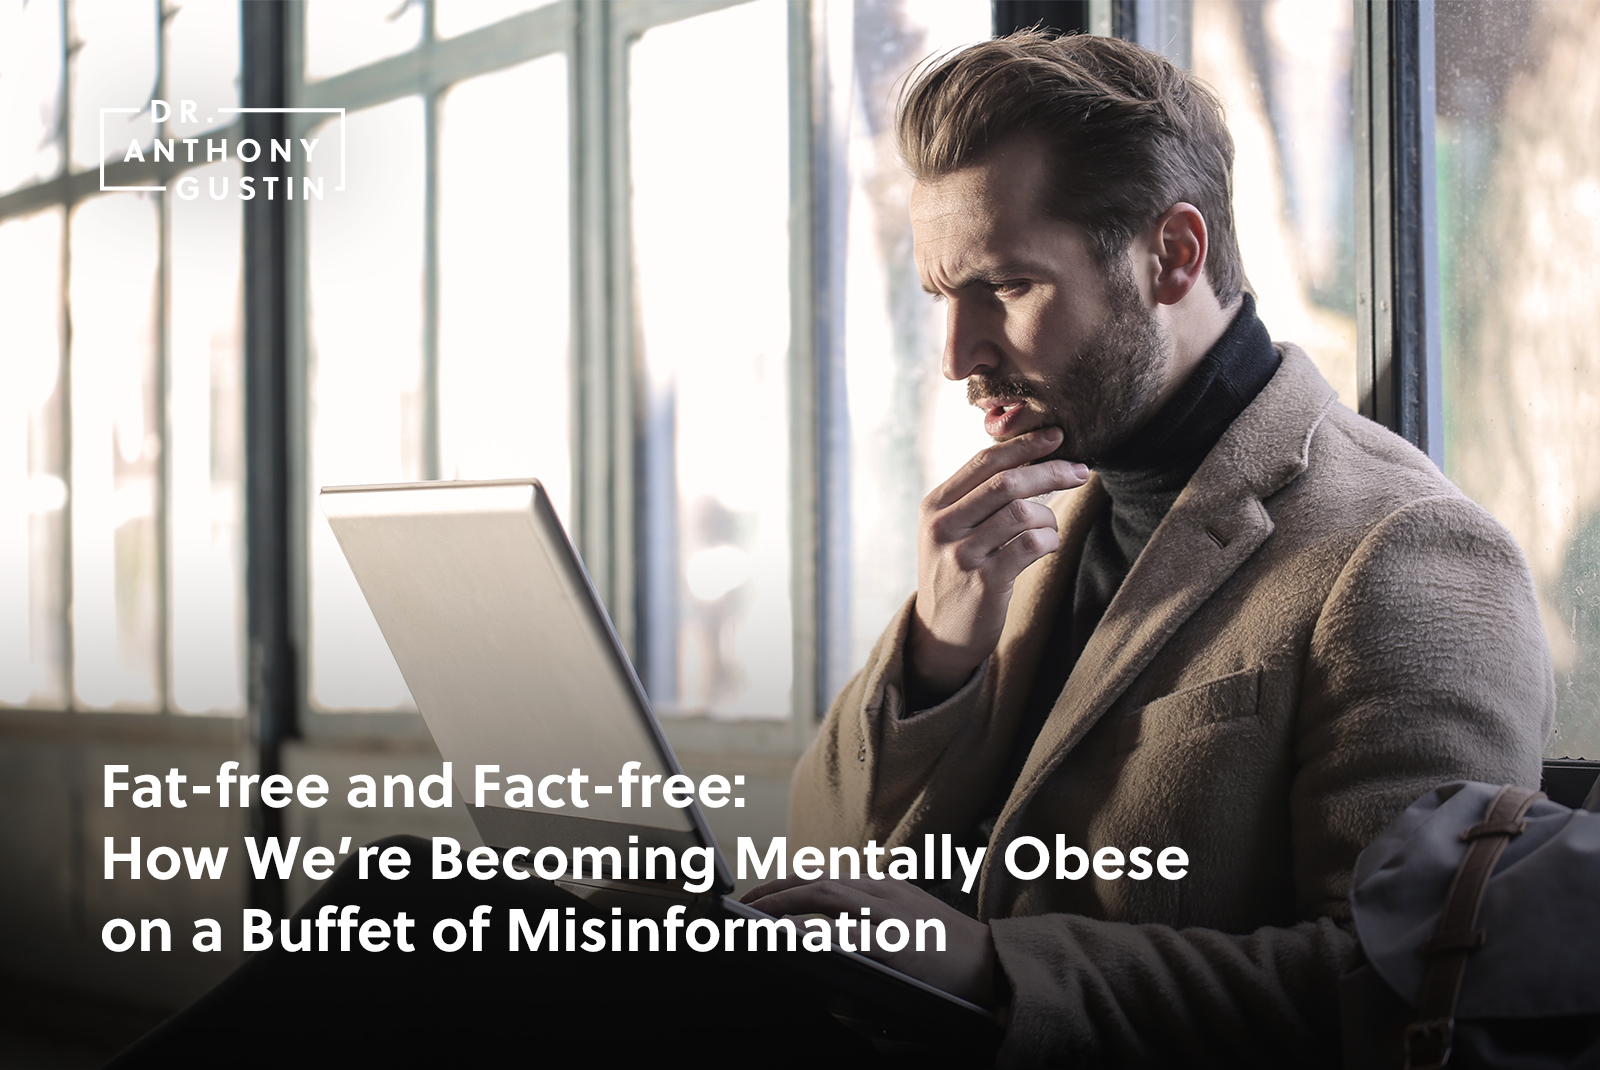 Fat-free and Fact-free: How We're Becoming Mentally Obese on a Buffet of Misinformation